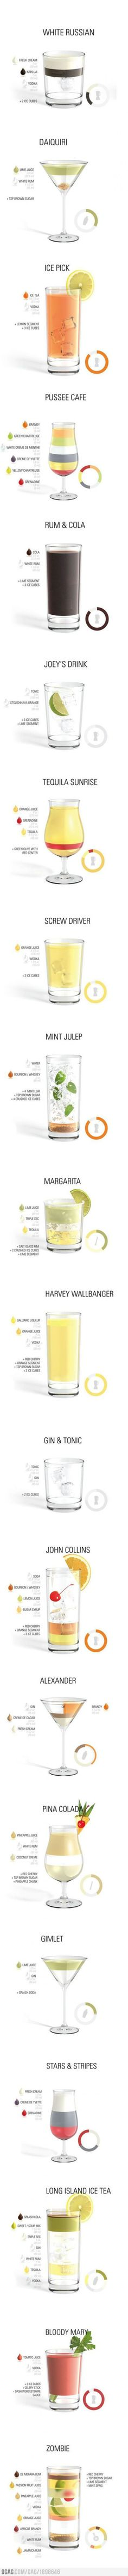 How to Make Typical Drinks...an Infographic #cocktailrecipes